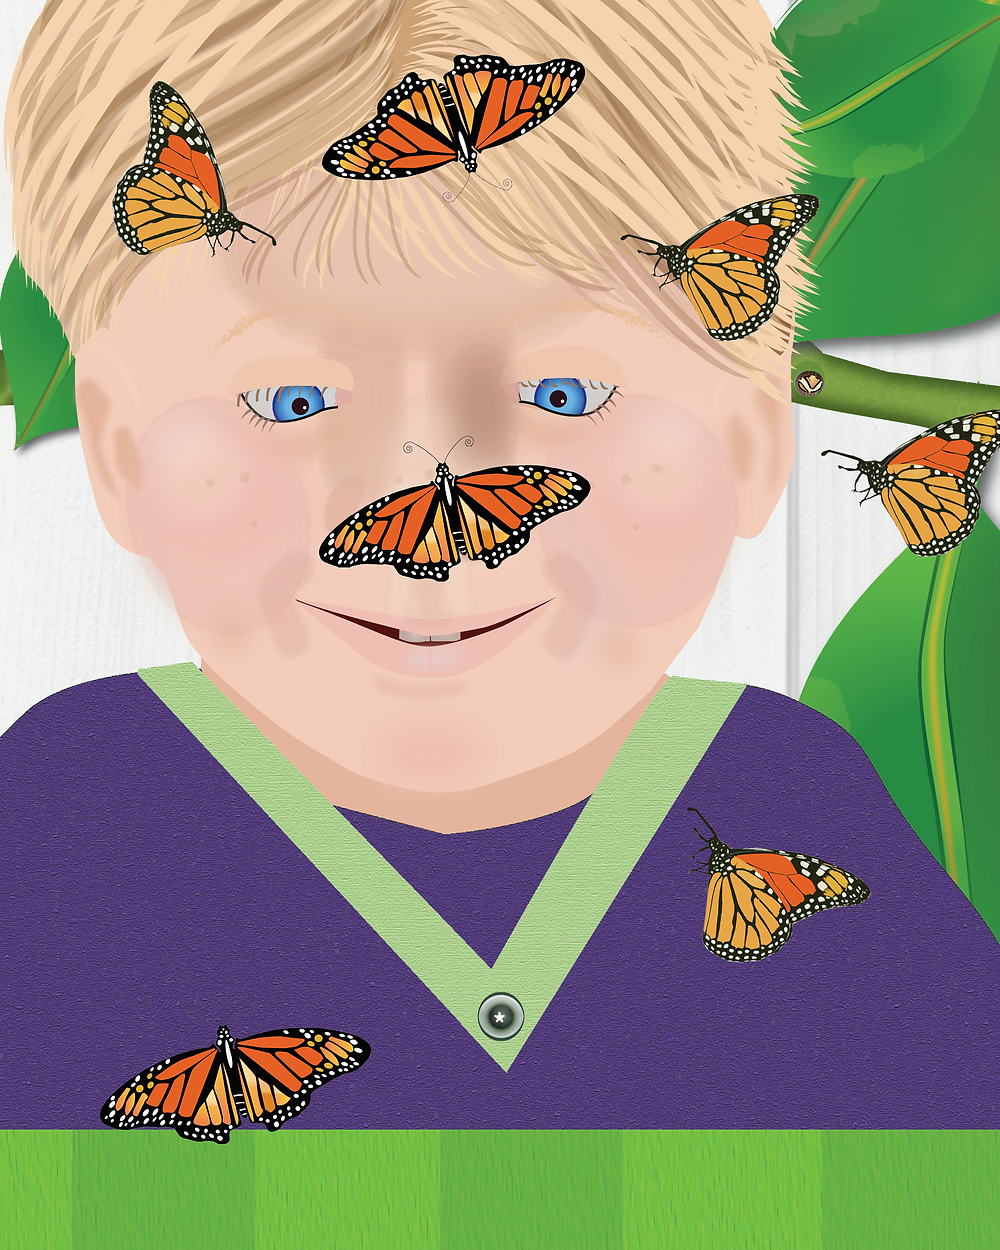 Arnie learns about how caterpillars turn into butterflies.